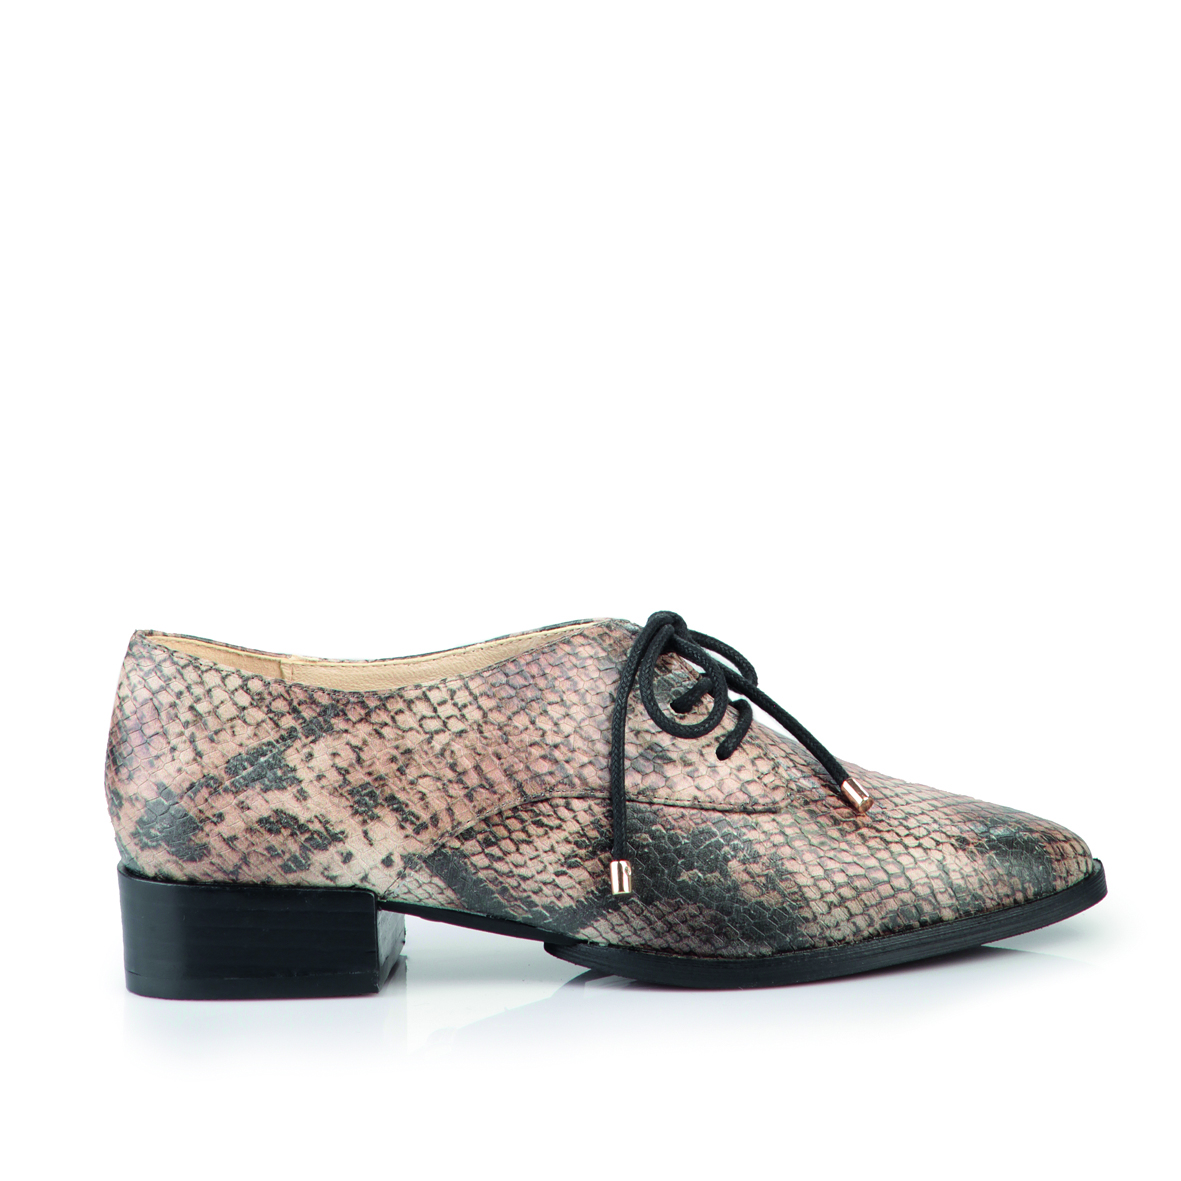 Buffalo Laurie Brogue Snake €145